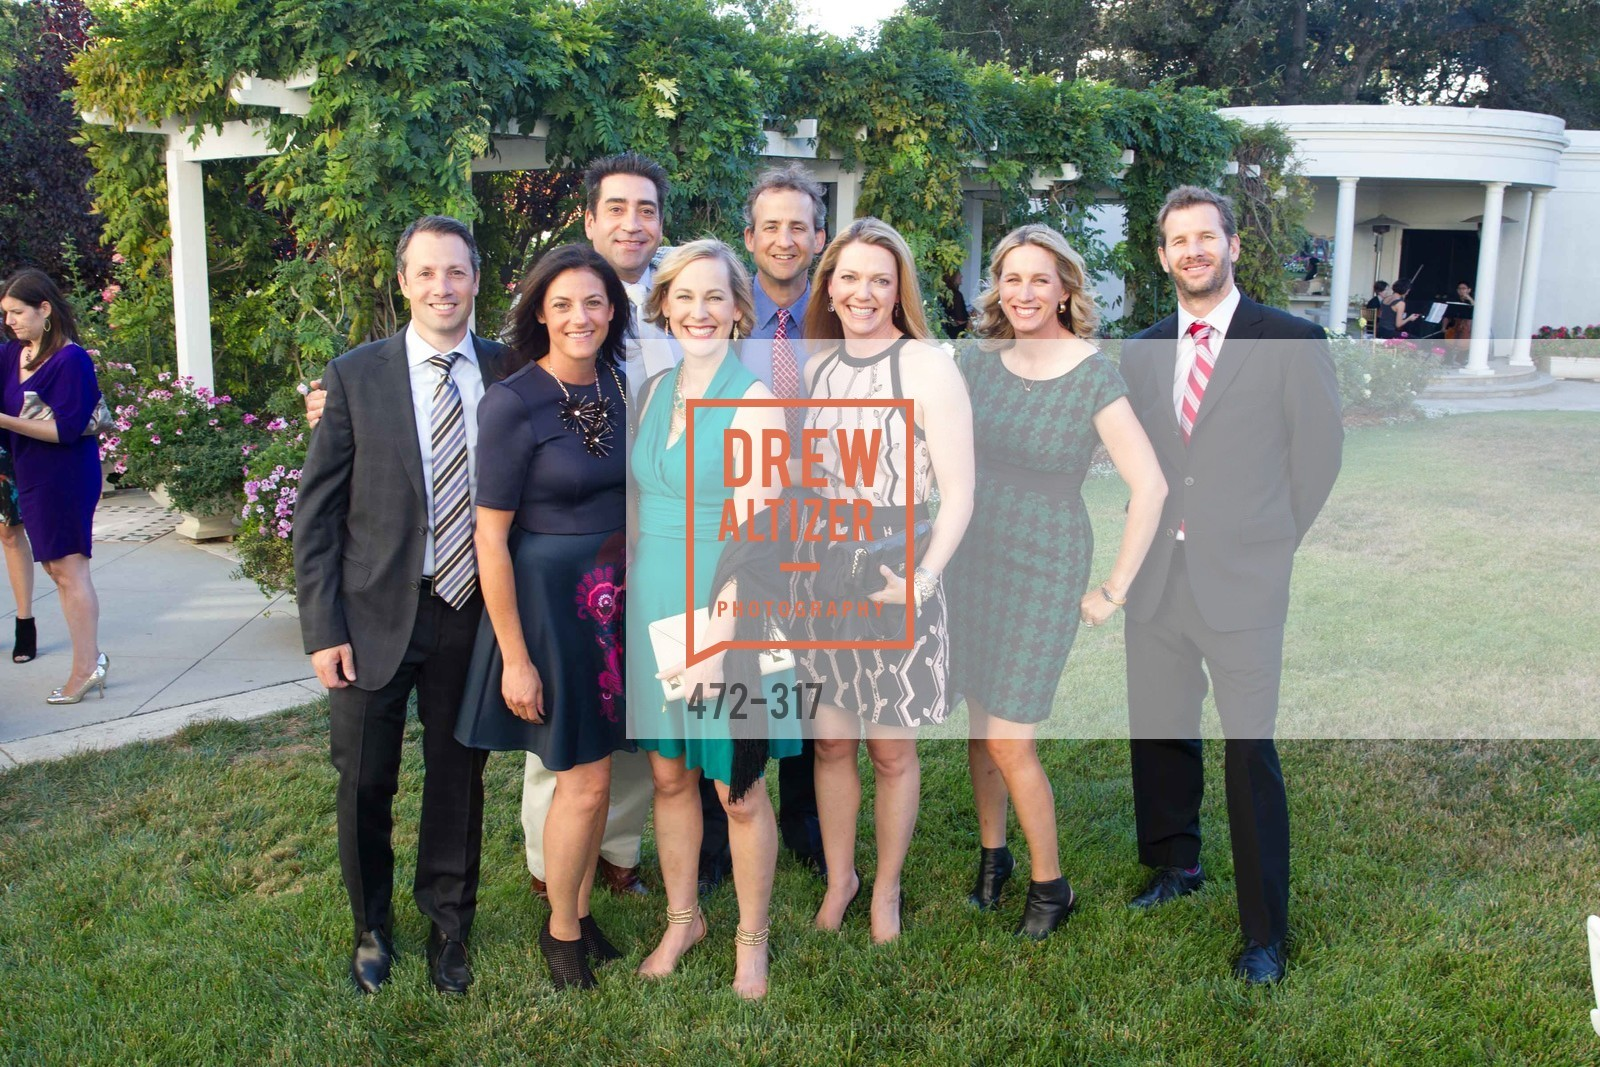 Joe Guillaume, Steve Matthews, Kathy Guillaume, John Storey, Kimarie Matthews, Katie Storey, Tina Clarke Dur, Brian Clarke, CuriOdyssey At Coyote Point 2015 Gala, CuriOdyssey. 401 El Cerrito Avenue, September 26th, 2015,Drew Altizer, Drew Altizer Photography, full-service agency, private events, San Francisco photographer, photographer california